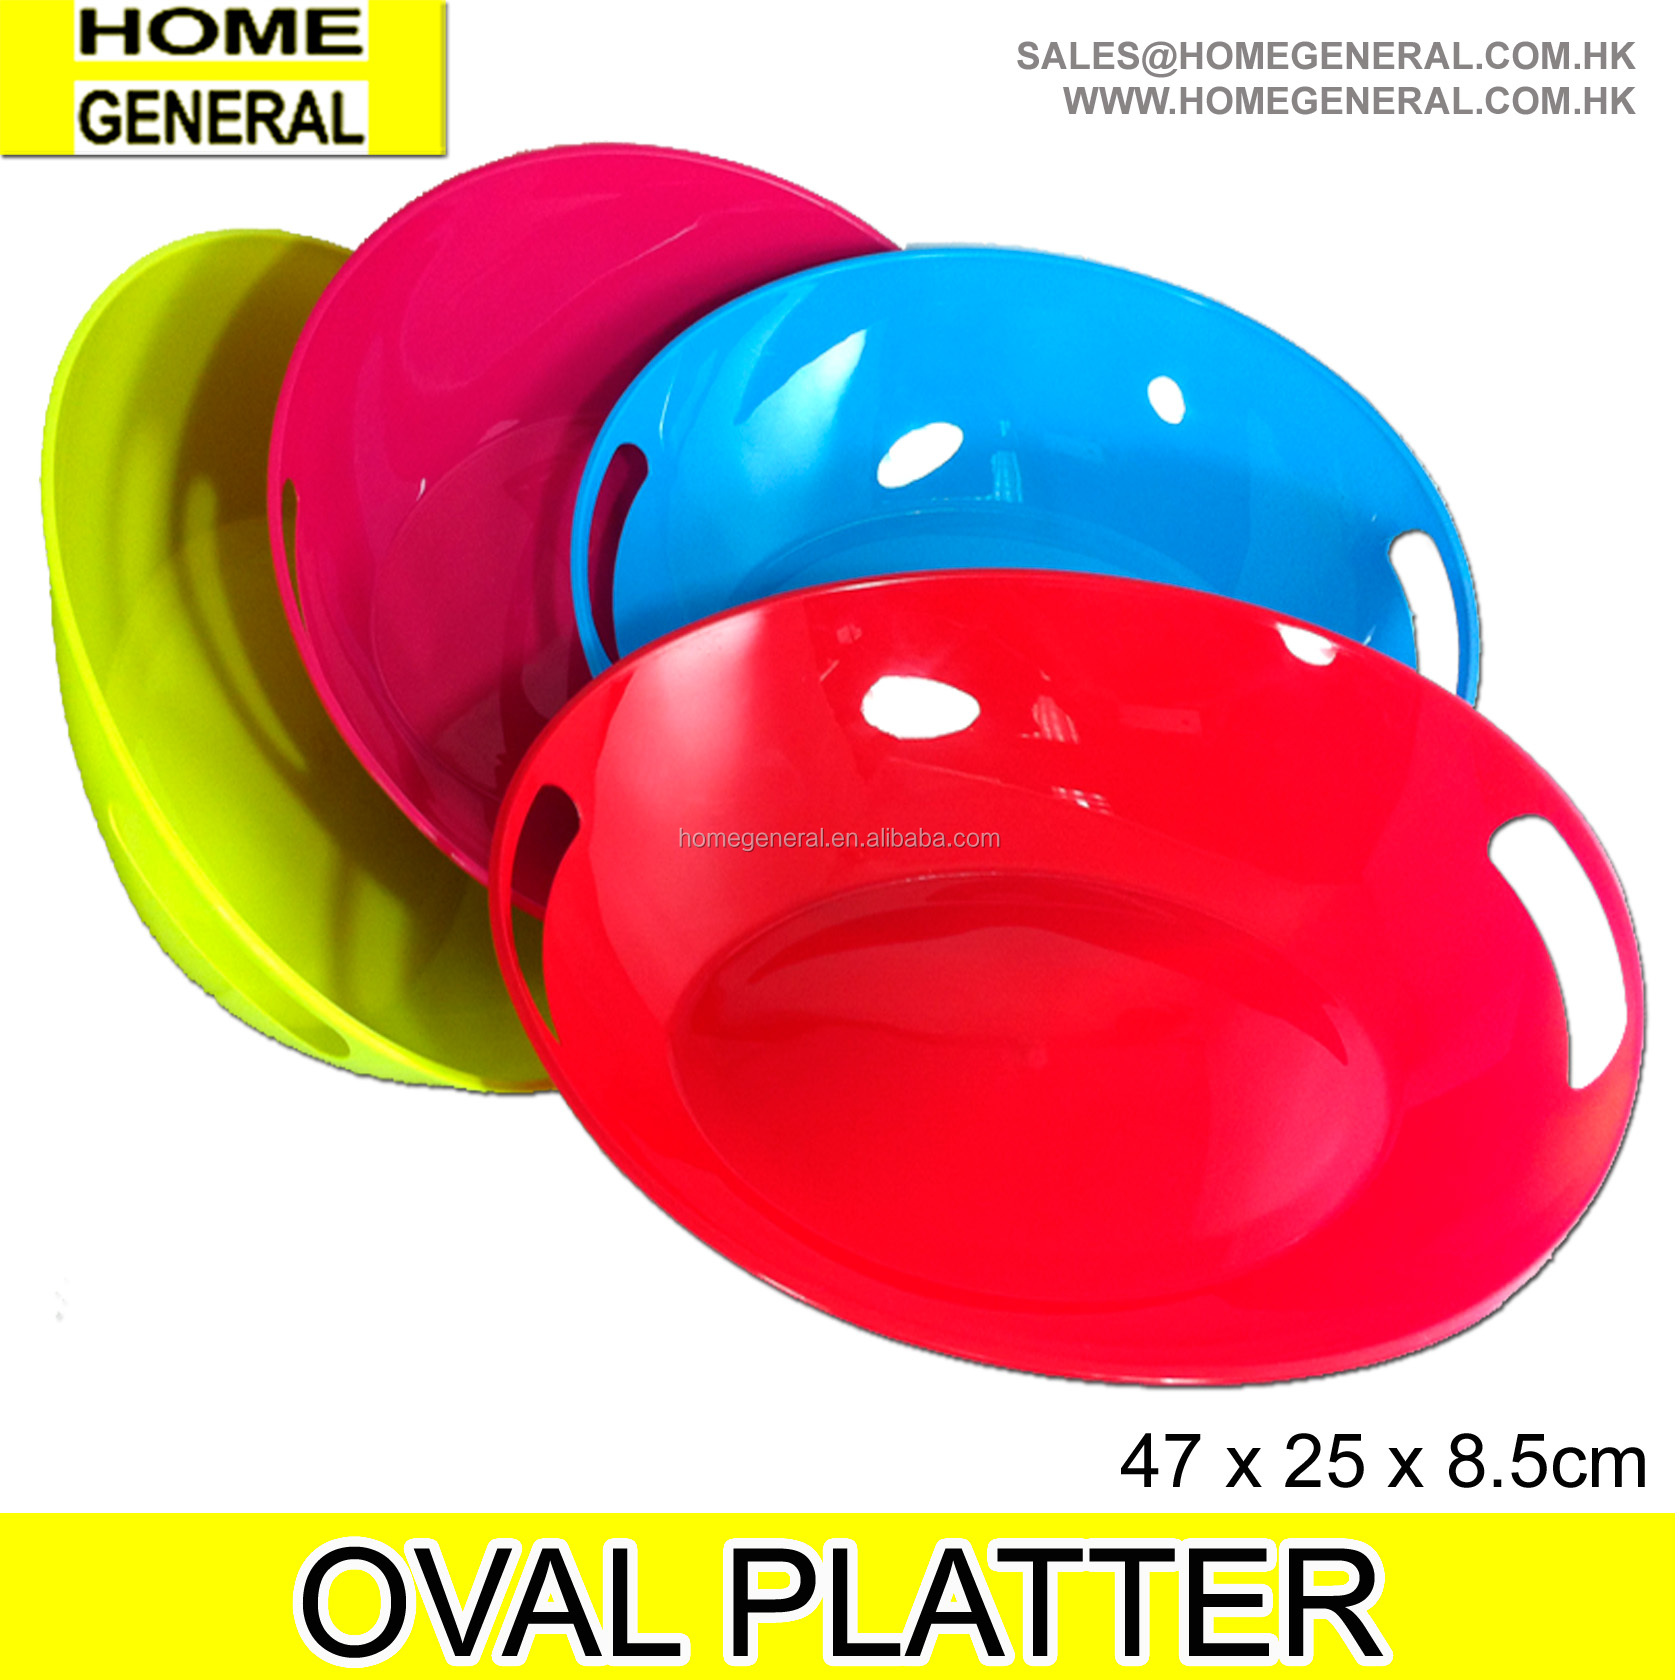 PLASTIC OVAL PLATTER PLASTIC PLATTER TURKEY PLATTER SERVING PLATTER PARTY PLATTER FRUIT PLATTER FOOD PLATTER